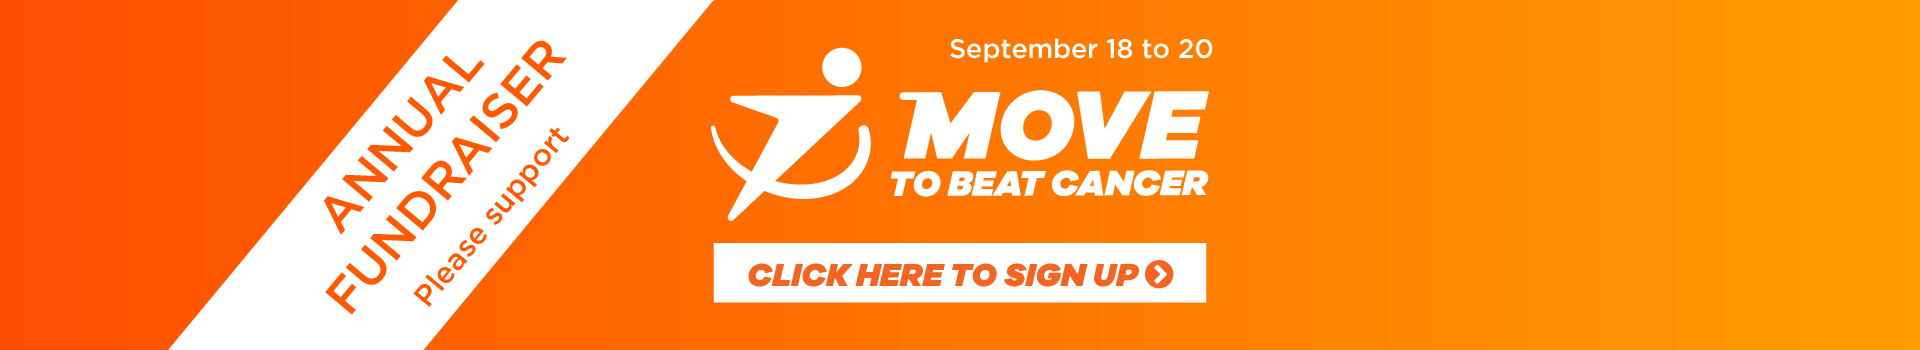 Move to Beat Cancer - Fundraising event for Kidney Cancer Canada